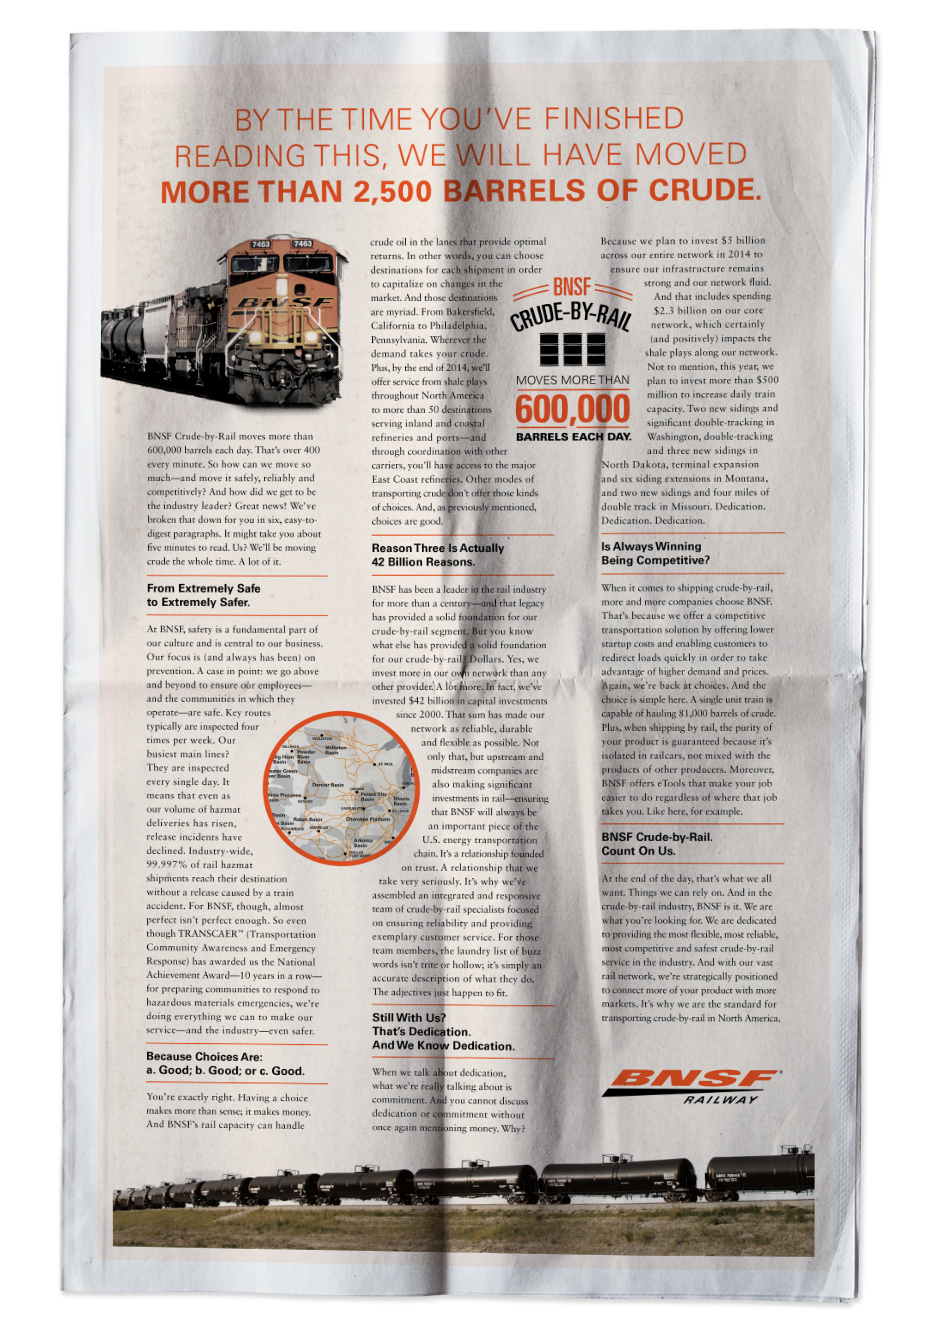 Bakken Full Page Newspaper Ad Mockup.png